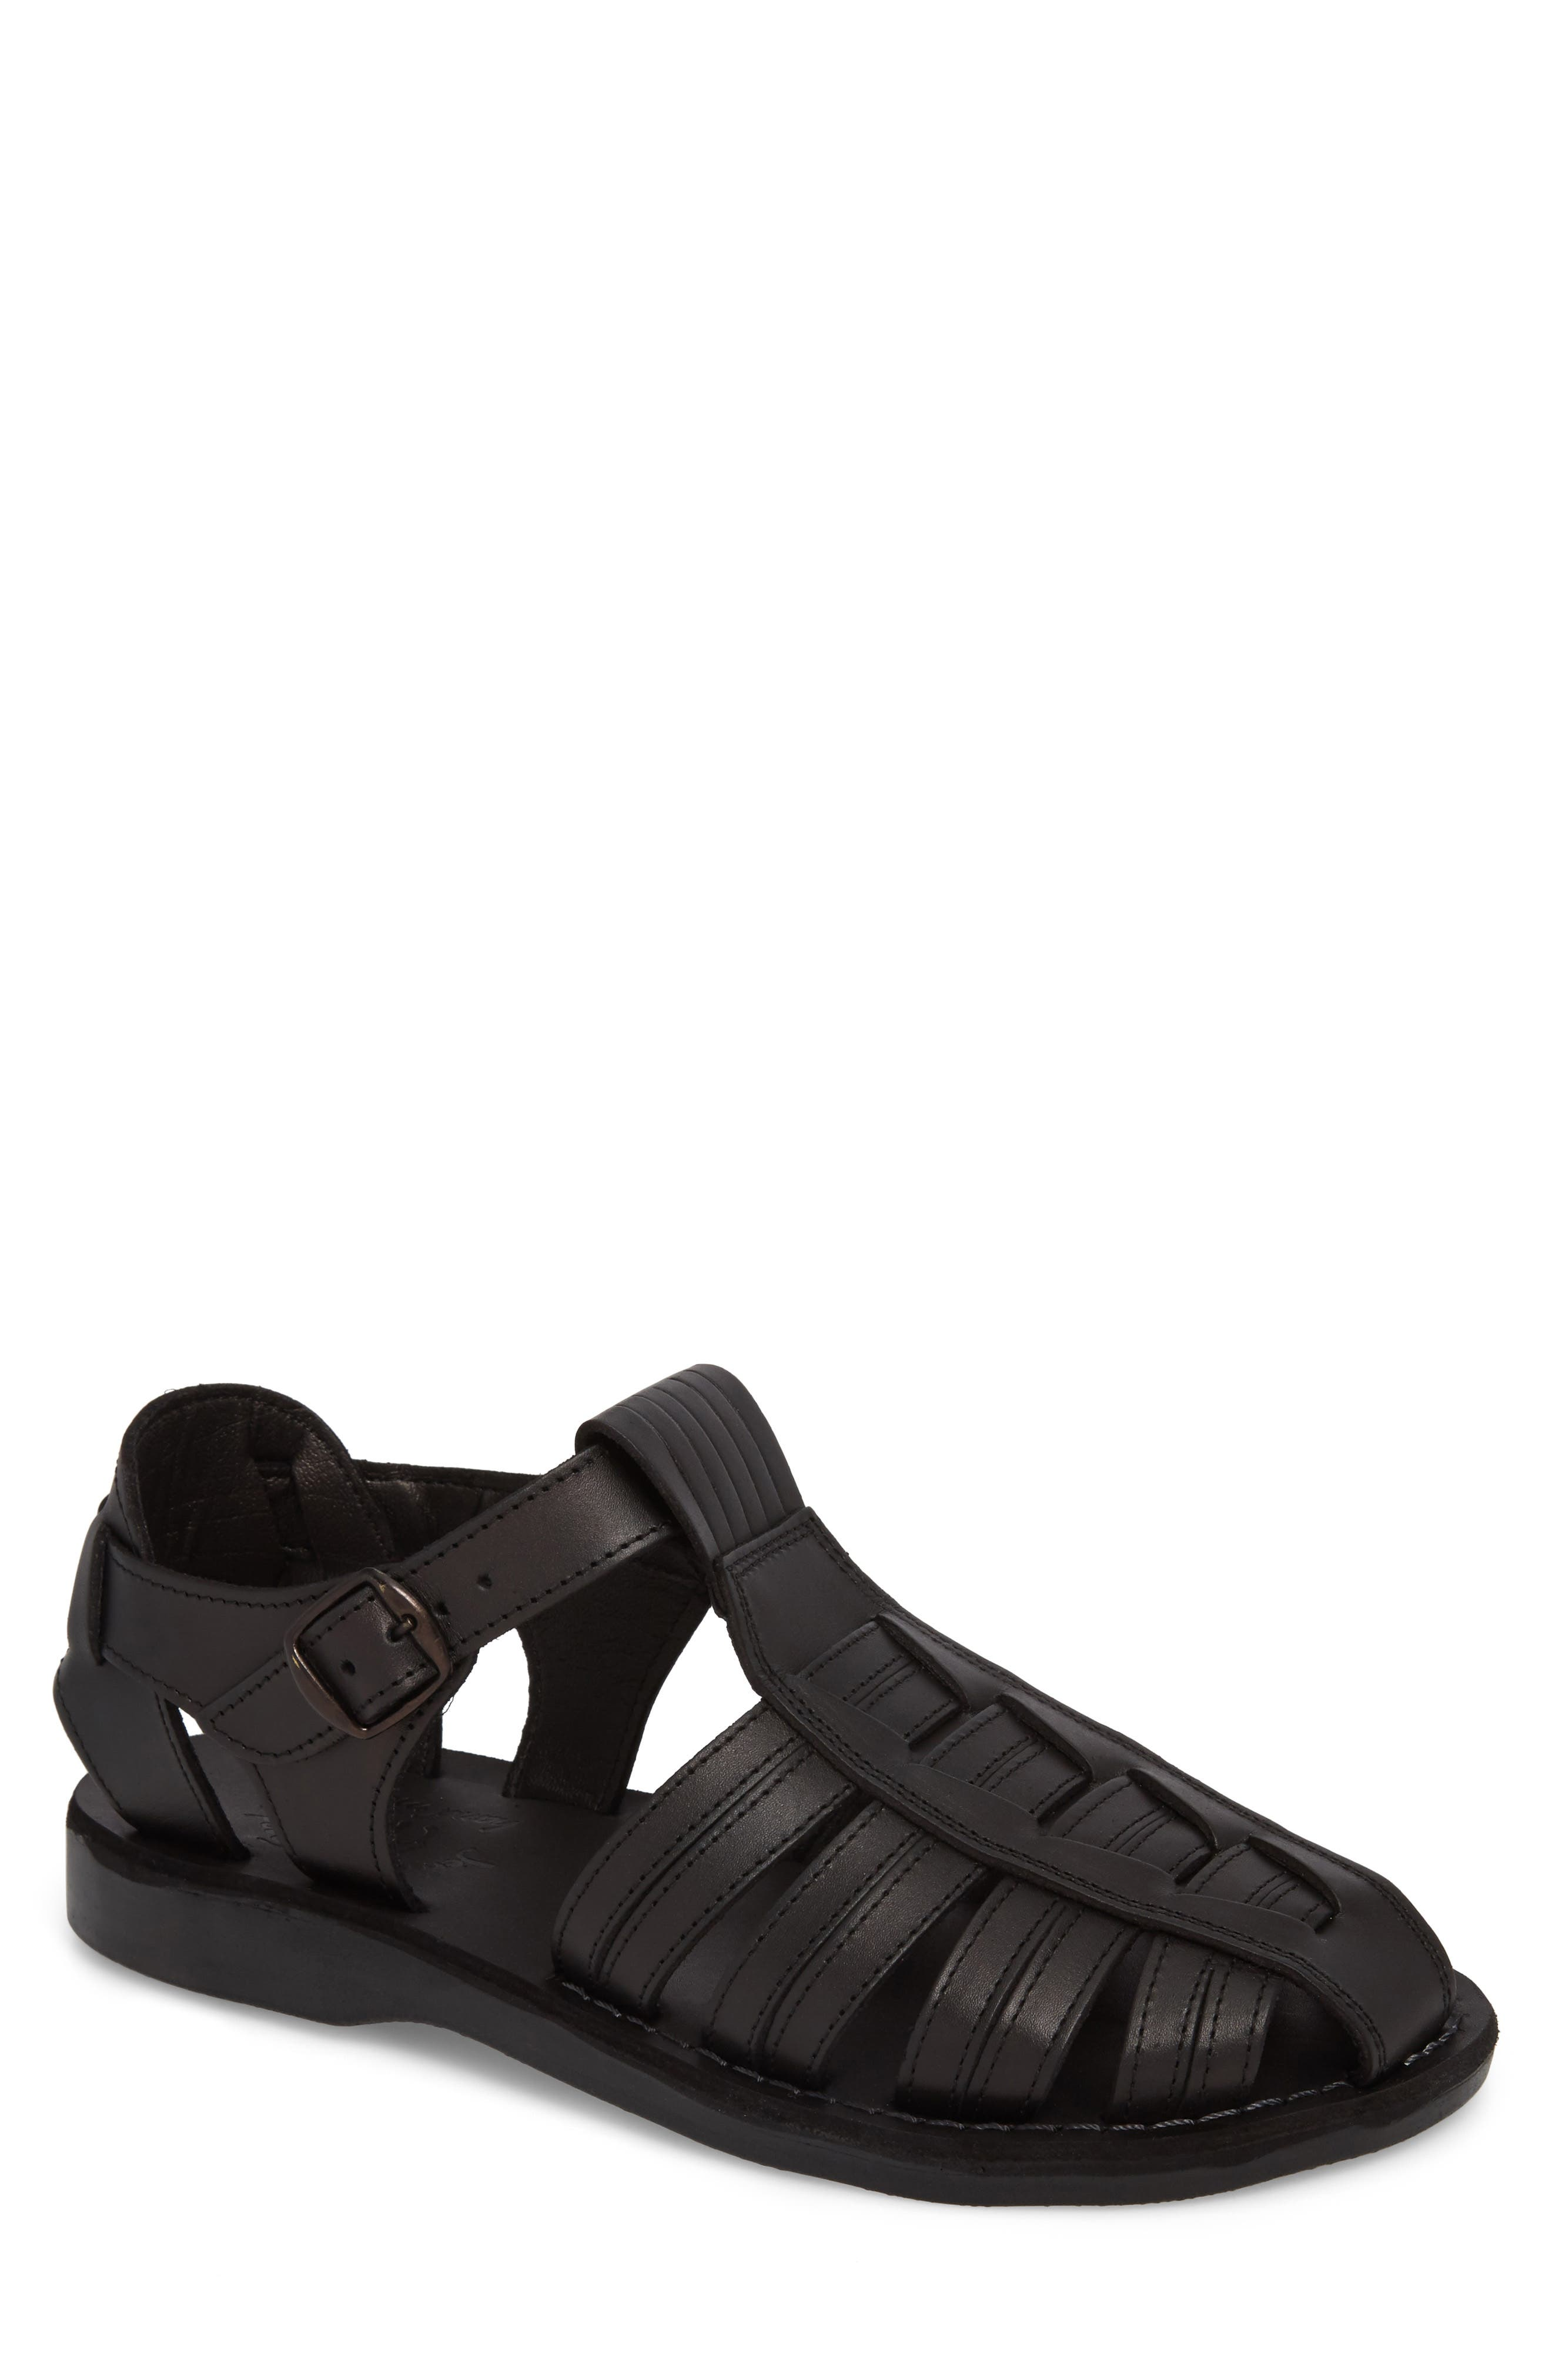 JERUSALEM SANDALS Barak Fisherman Sandal, Main, color, BLACK LEATHER